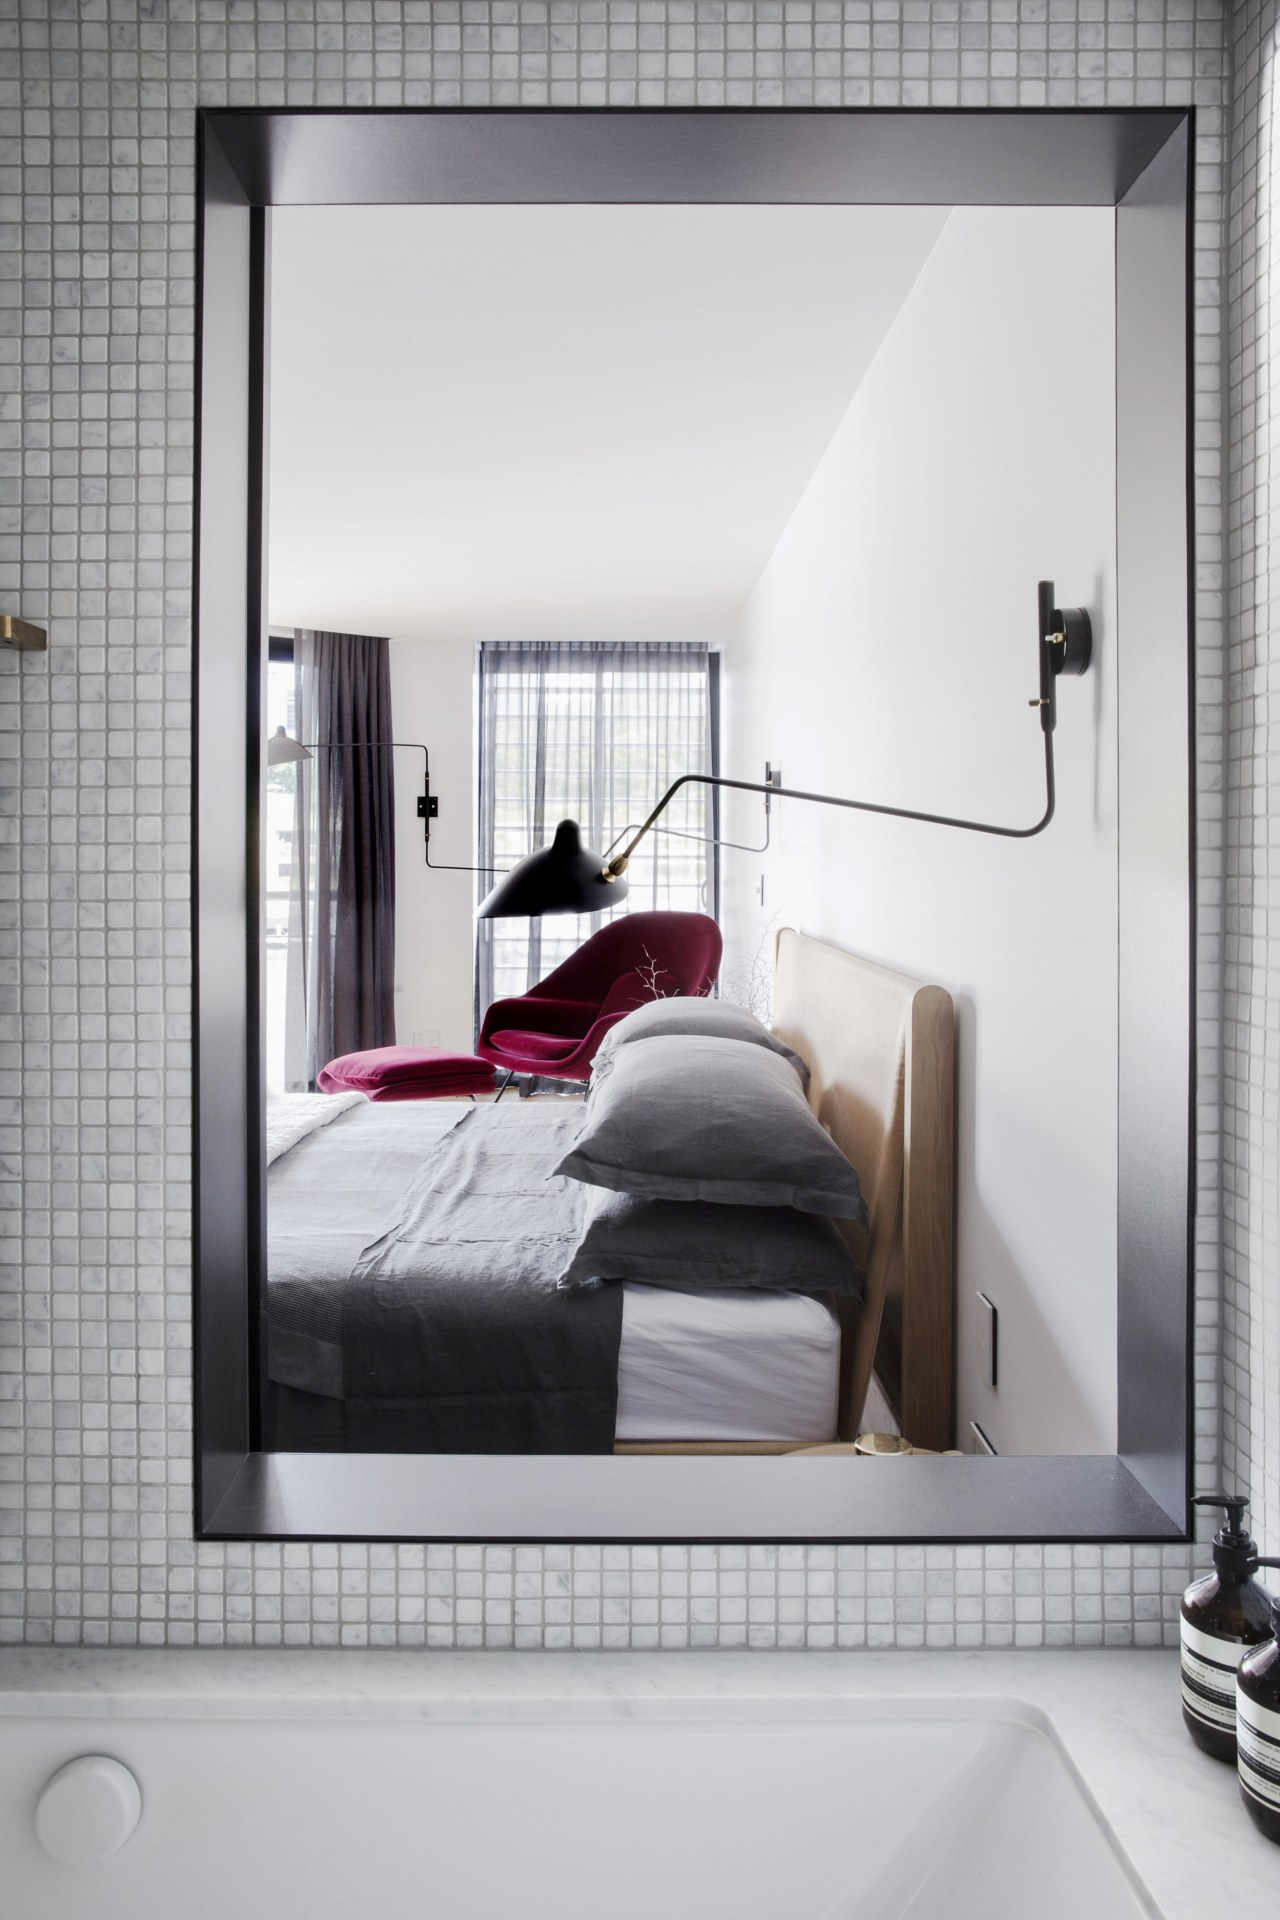 This view from within the bathing pod of bed, bed frame, door, furniture, home, interior design, room, window, gray